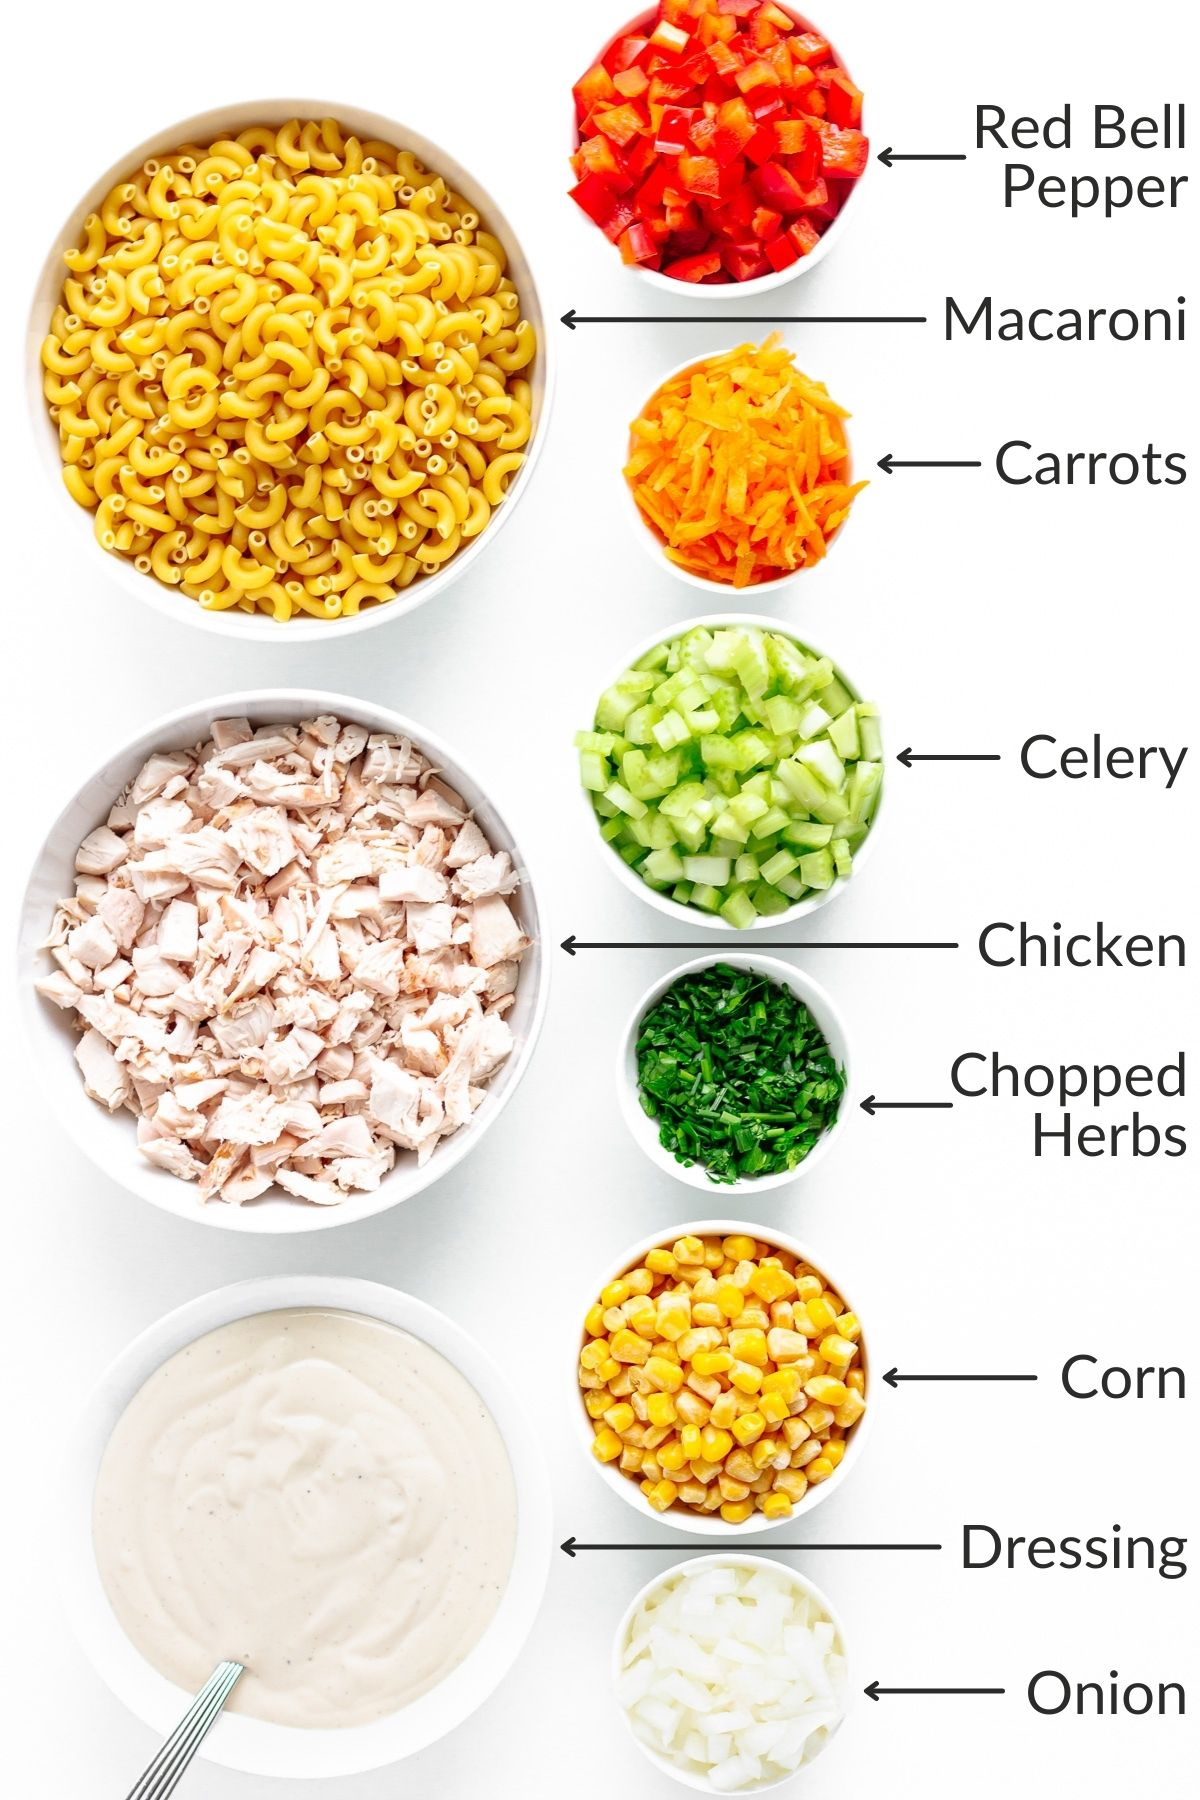 Labelled image showing ingredients for chicken macaroni salad.